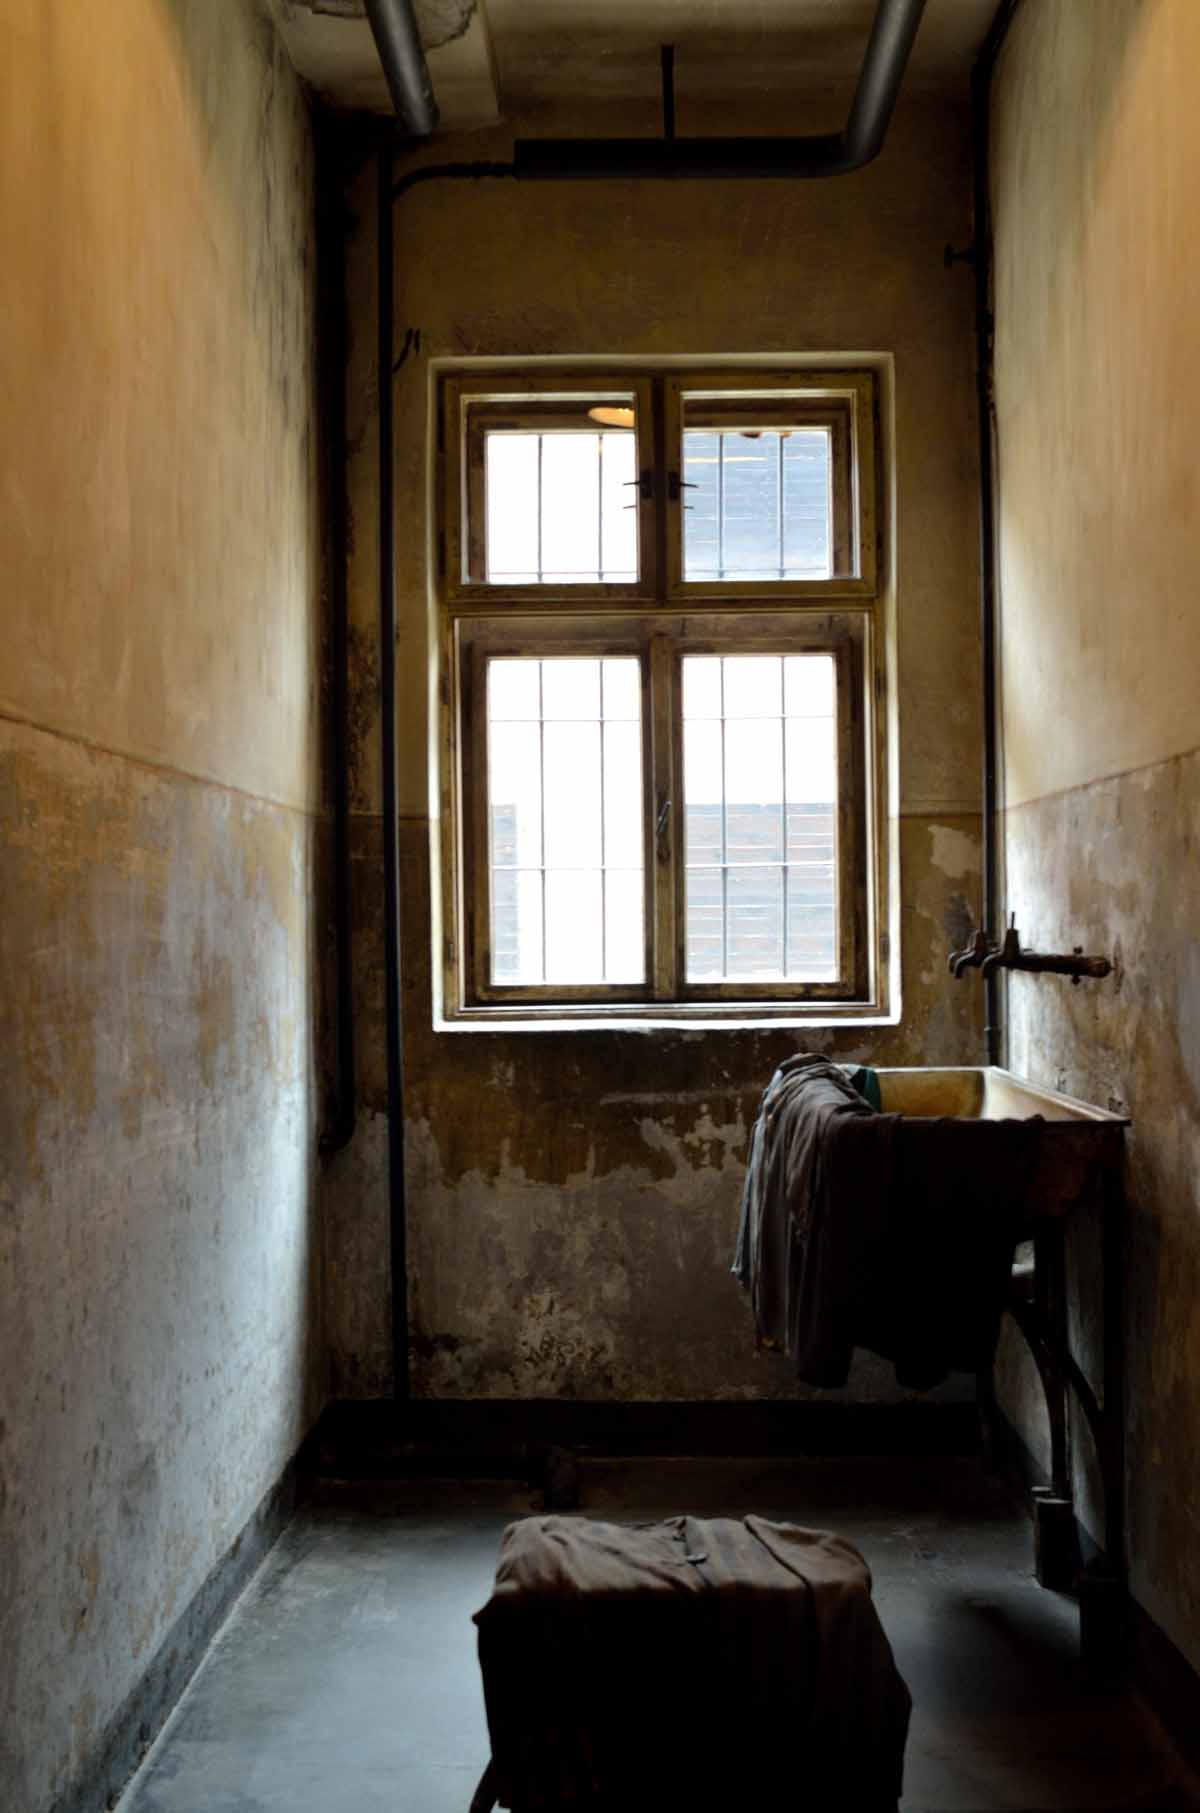 Clothes on sink in cell